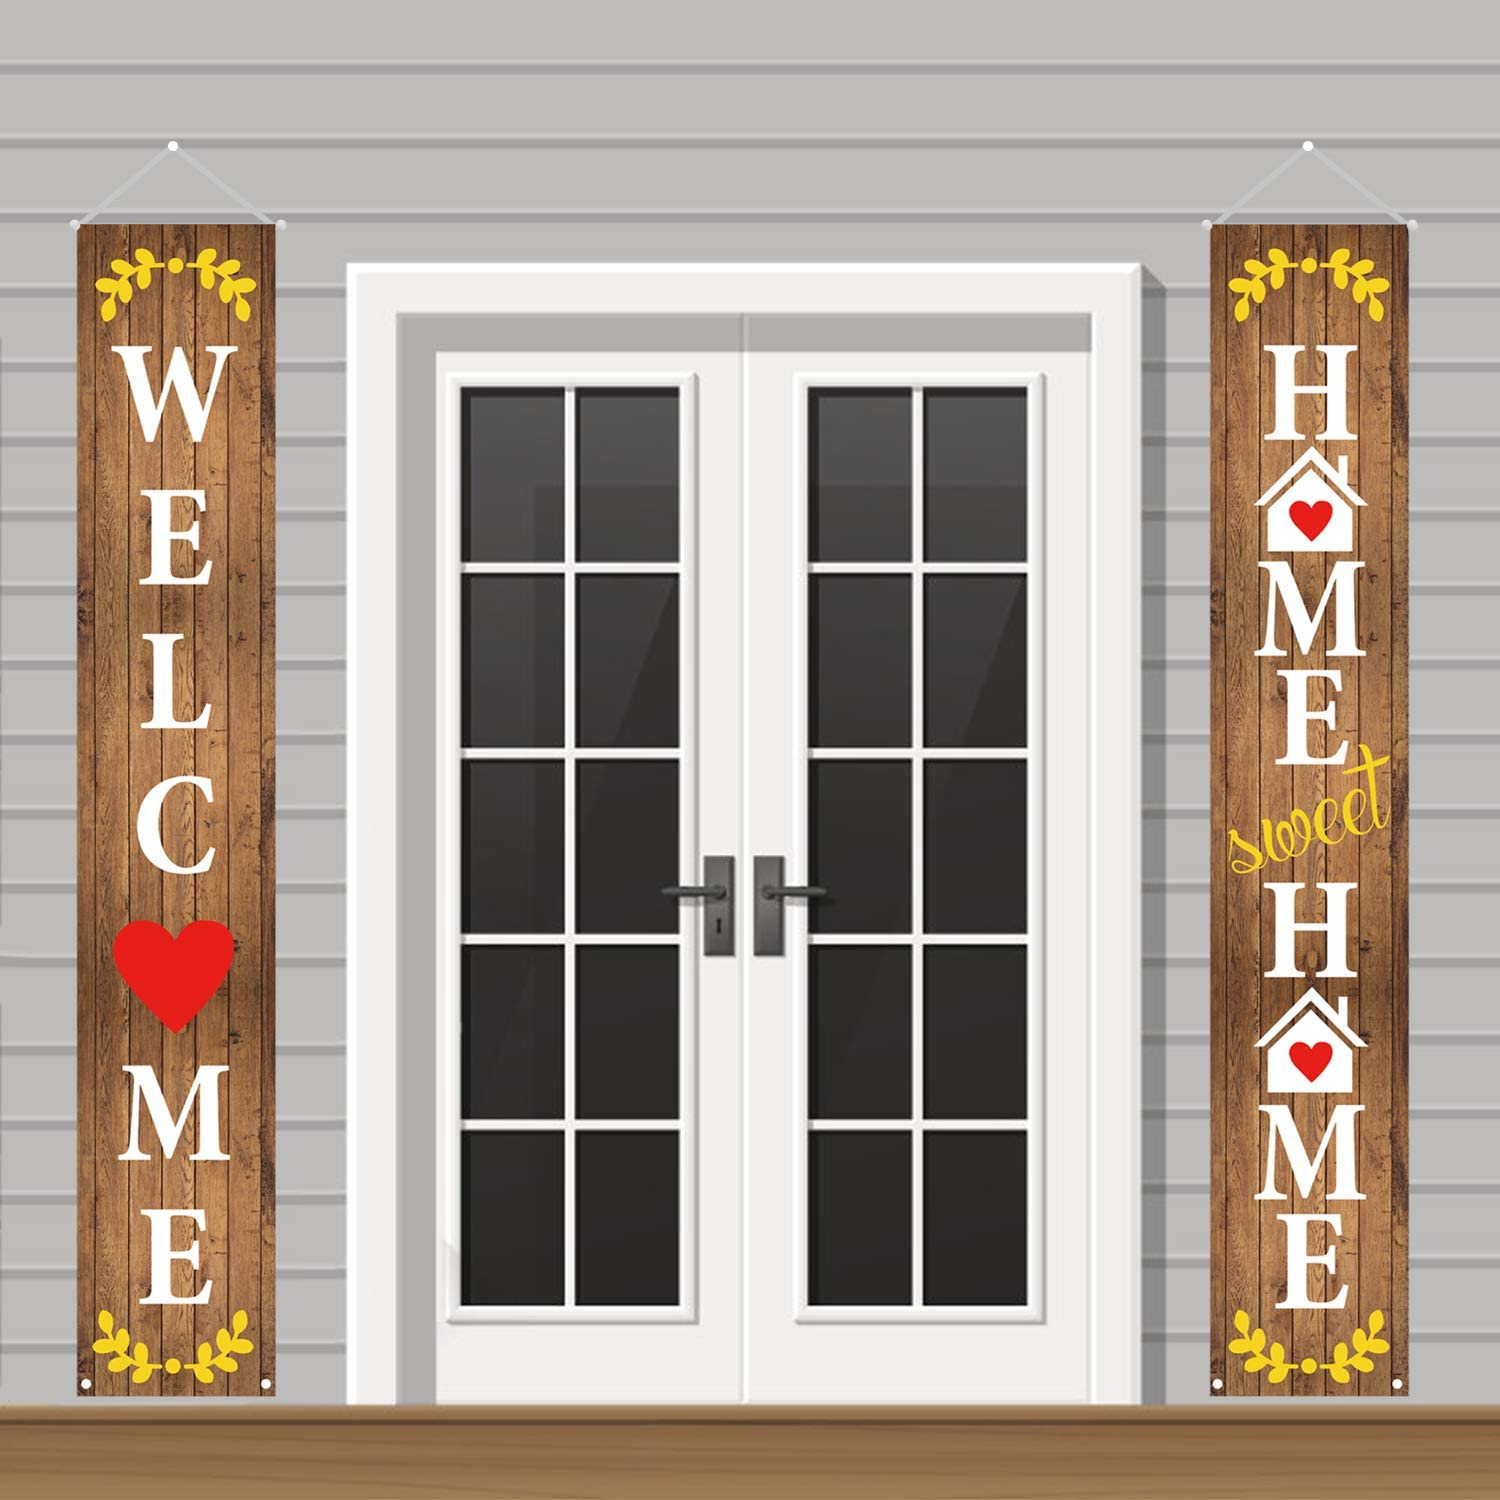 Mosoan Welcome Home Sweet Home Decorations Outdoor - Welcome Home Decorations for Front Door or Indoor Home Decor | Porch Decorations | Welcome Home Vertical Signs